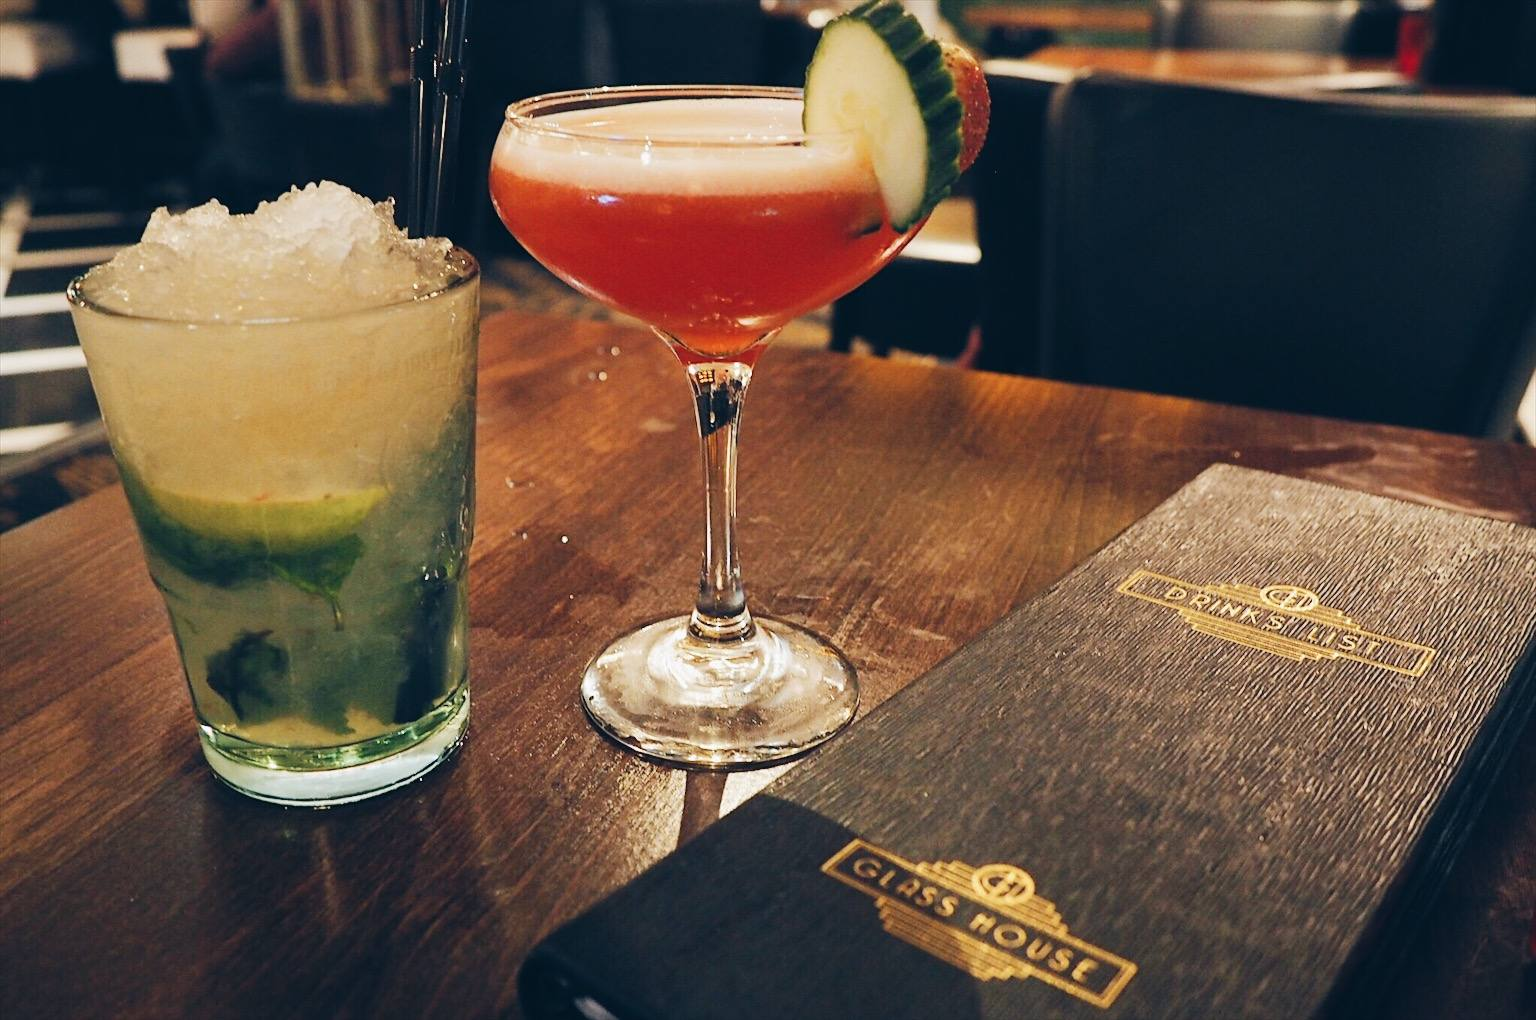 Cocktails at Glasshouse Newcastle